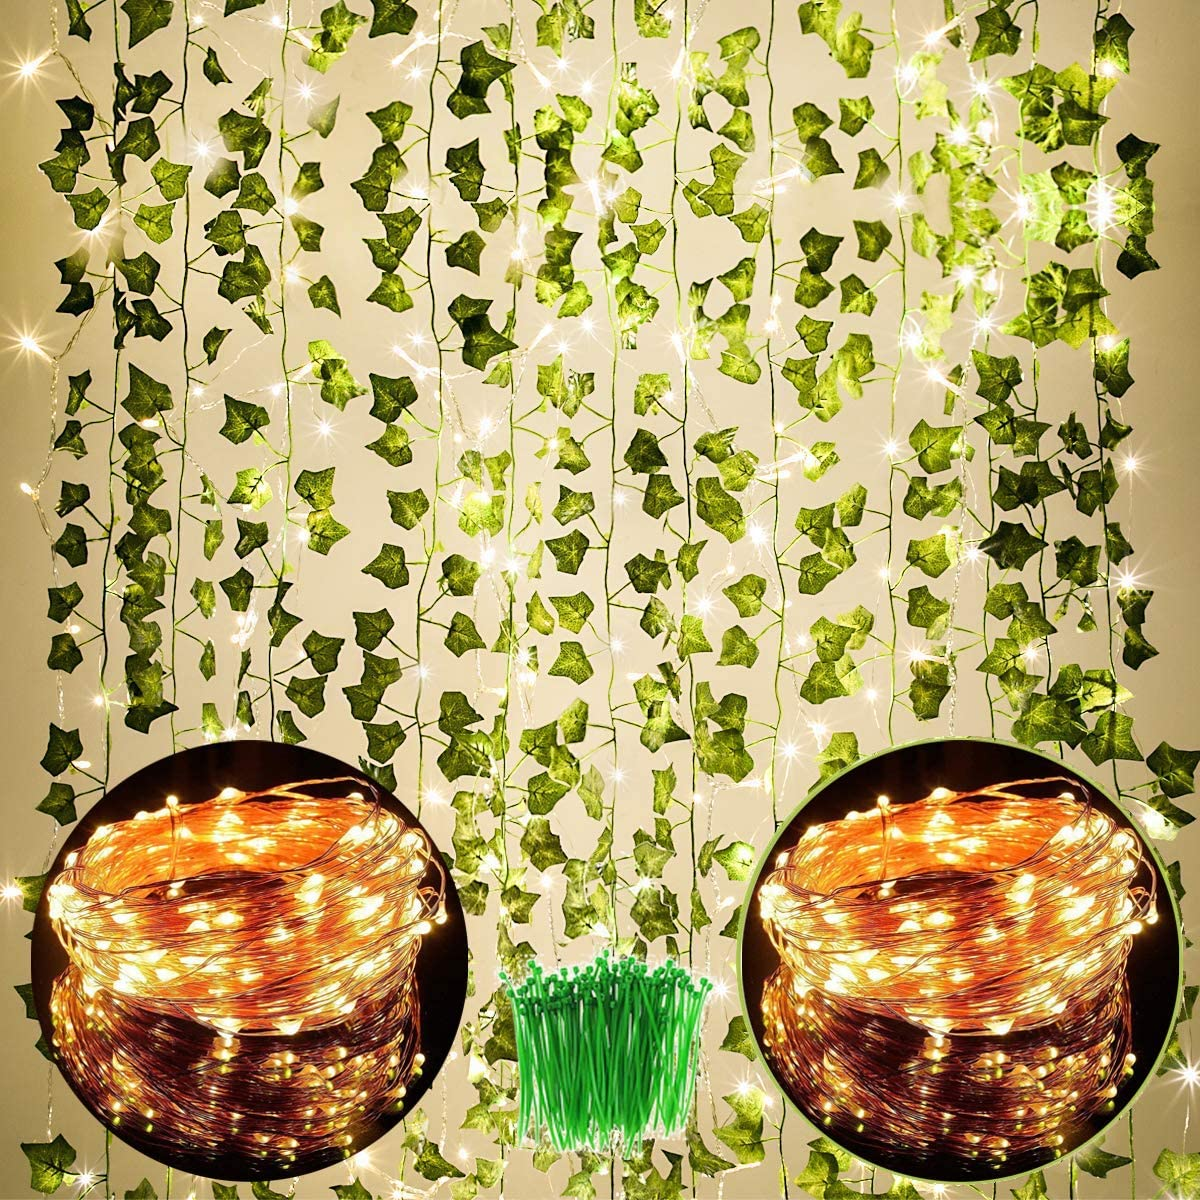 168 FT Artificial Ivy 24 Pack Ivy Vine Garland Ivy Leaves Greenery Garlands Hanging with 200 LED String Light Fake Leaf Plants Faux Green Flowers Decor for Home Kitchen Garden Office Wedding Wall